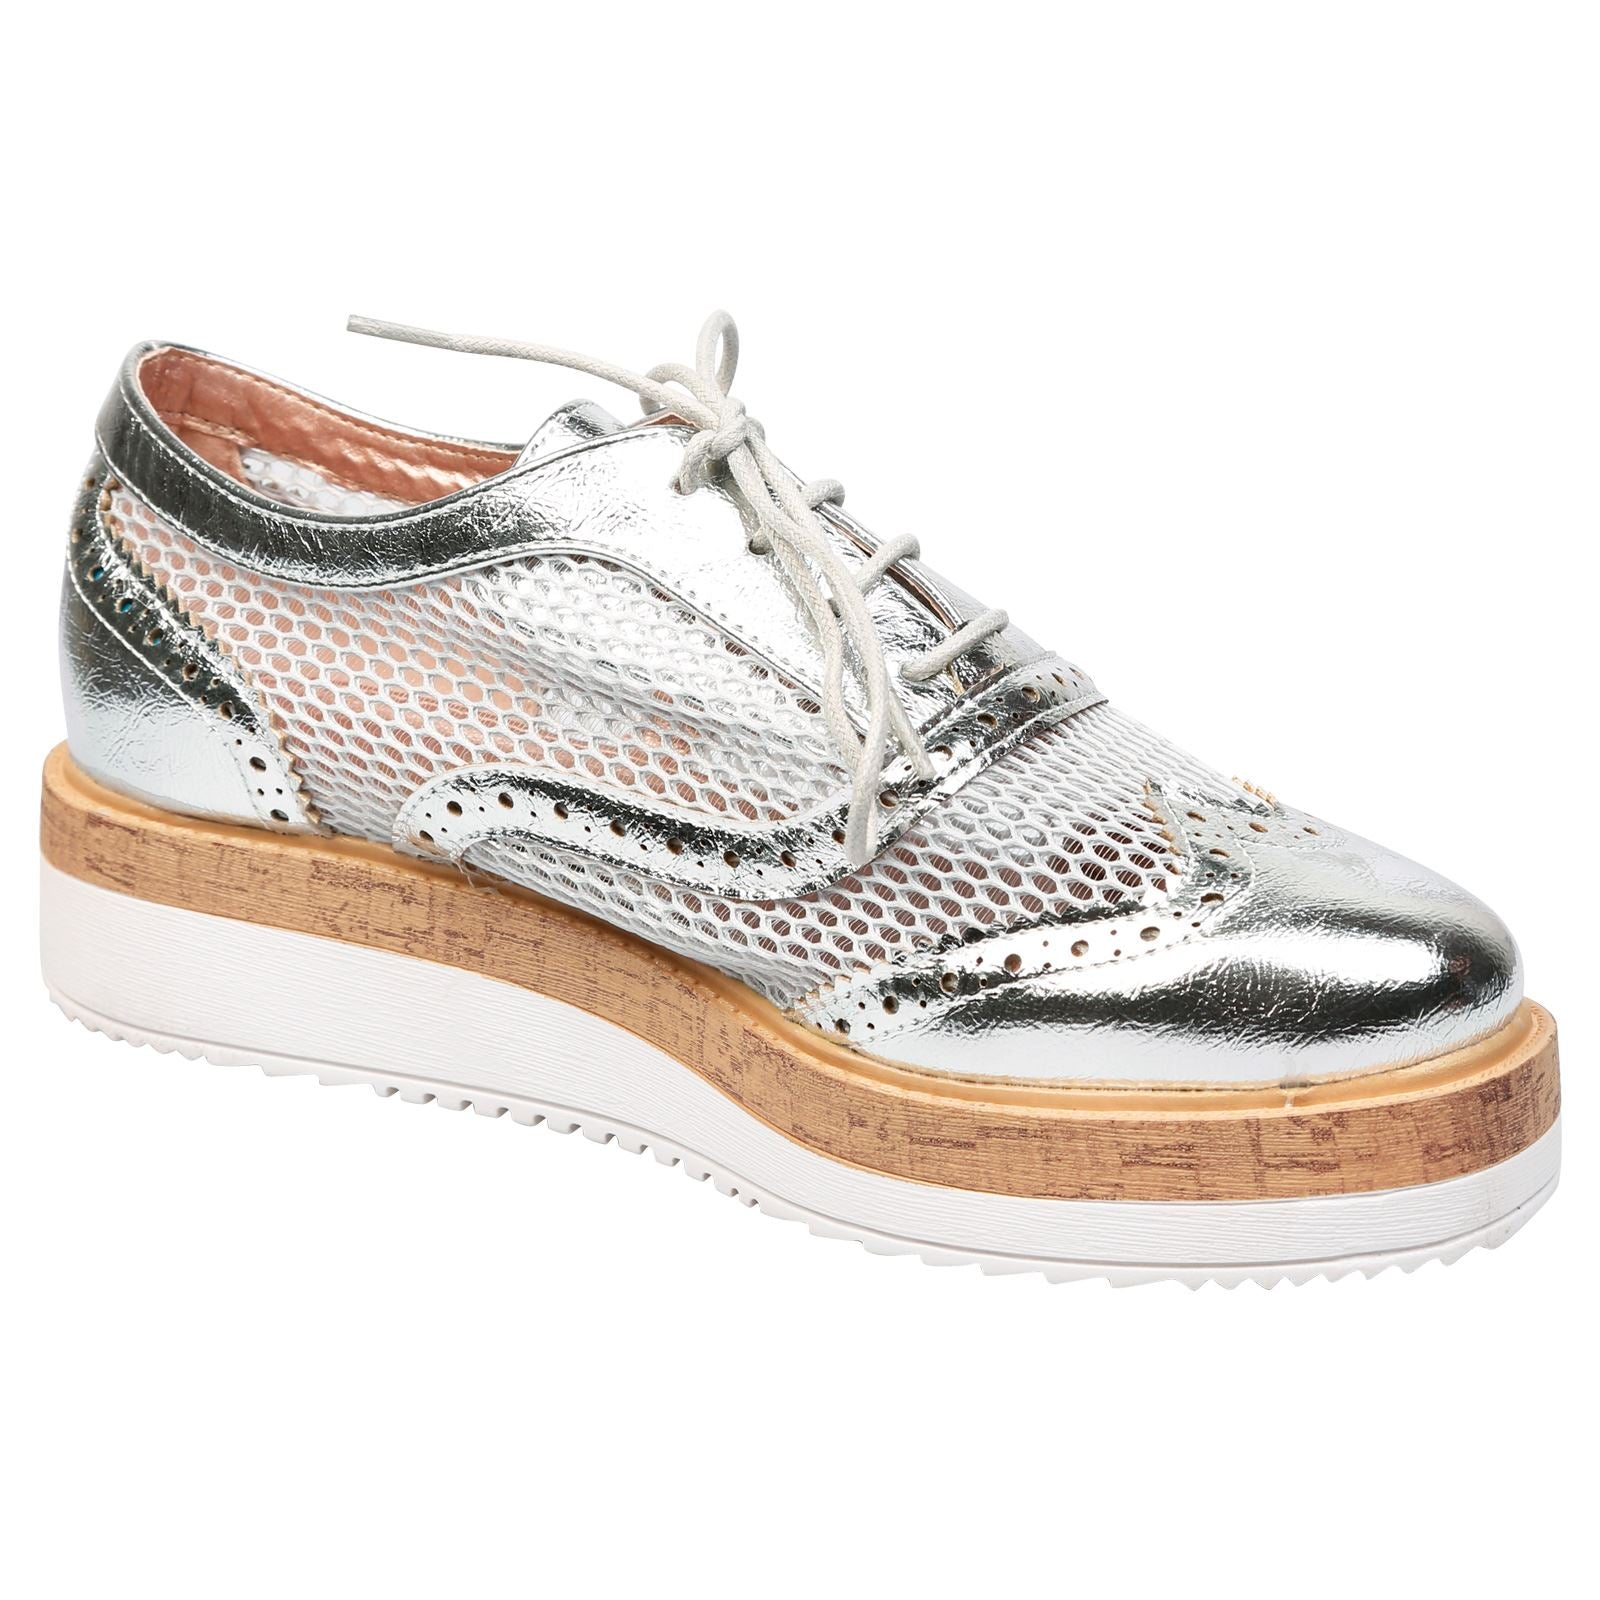 Alana Mesh Side Flatform Brogues in Silver